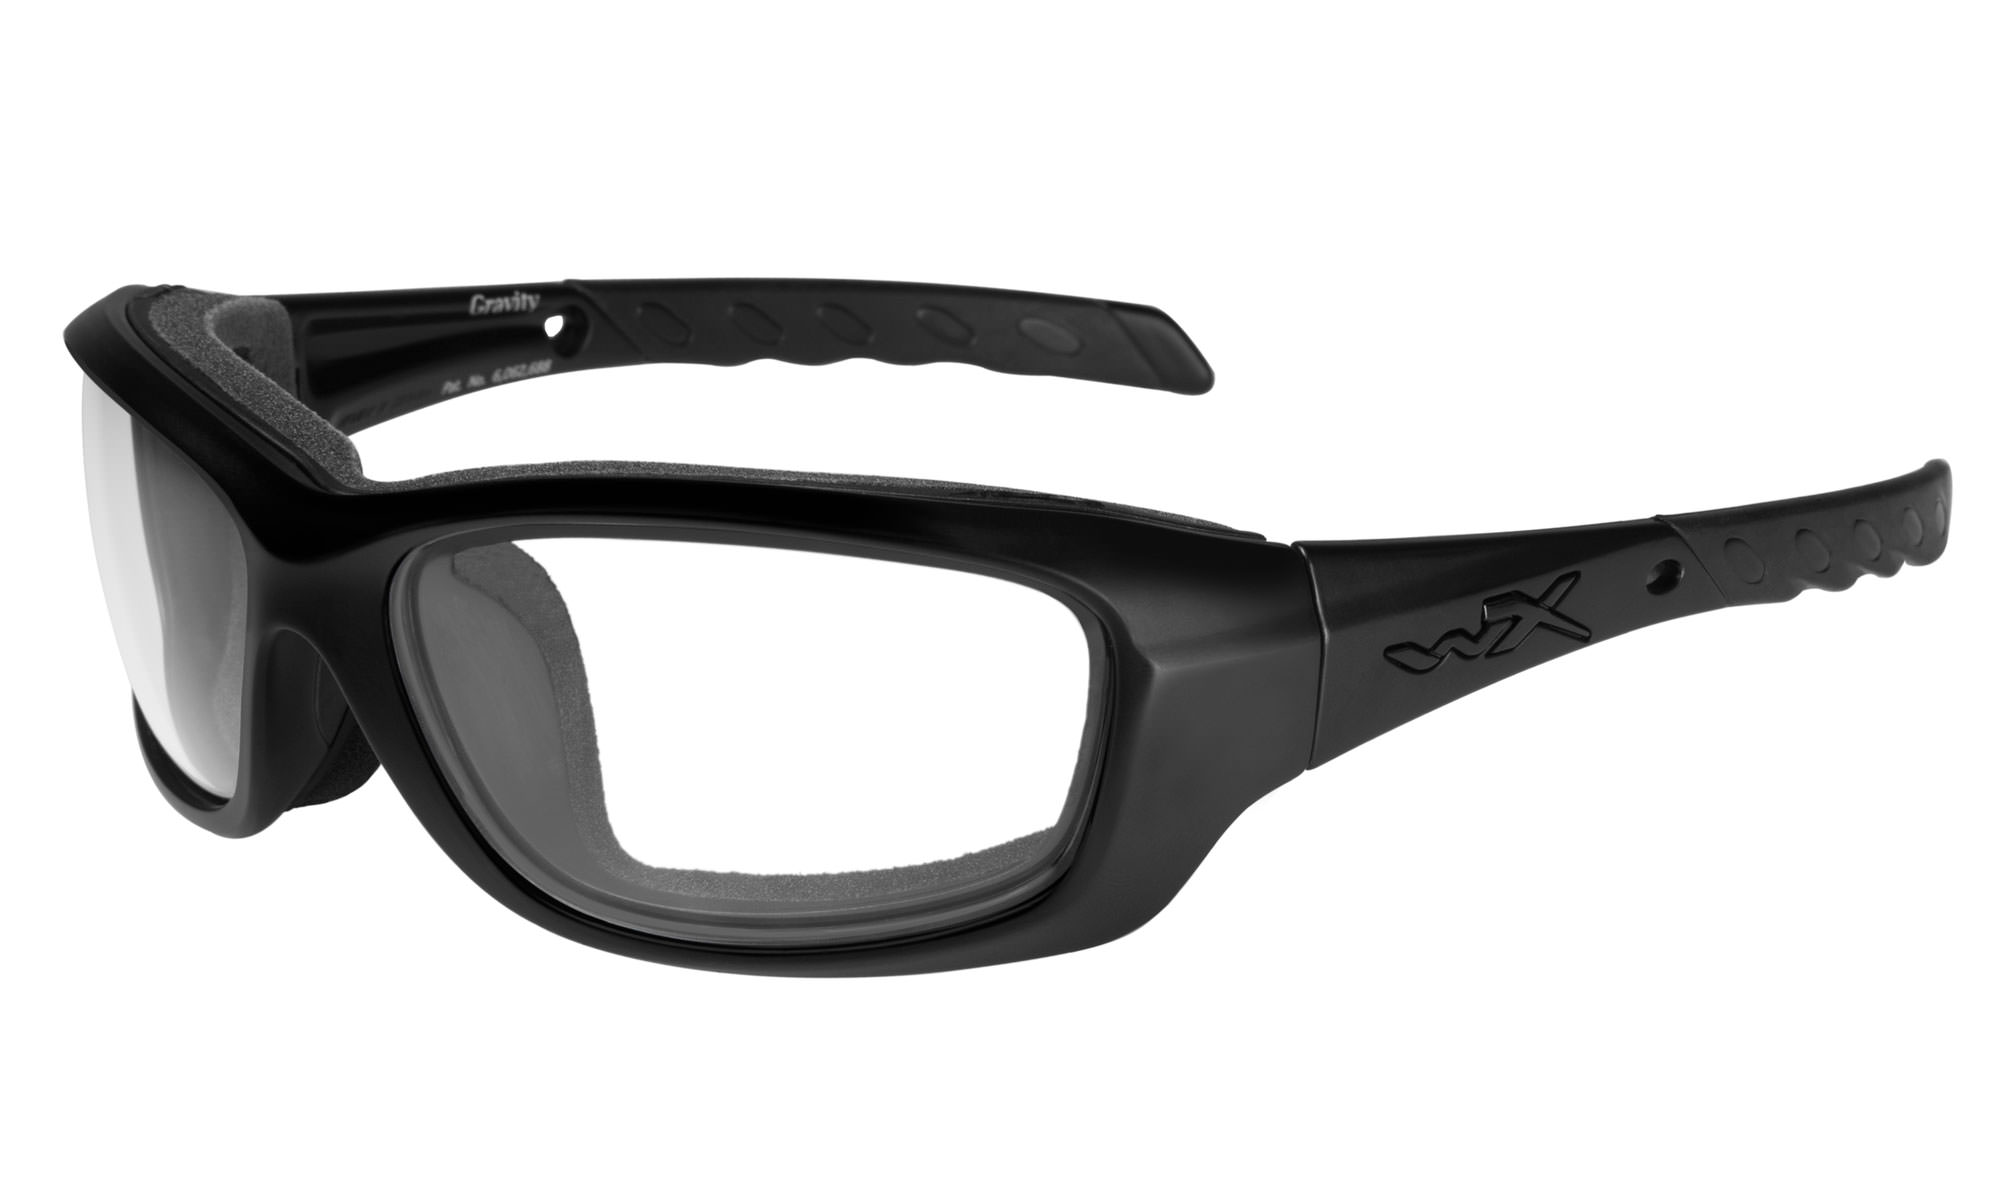 0b6d8a851973 Wiley-X WX Gravity Matte Black with Clear Lenses | Wiley X